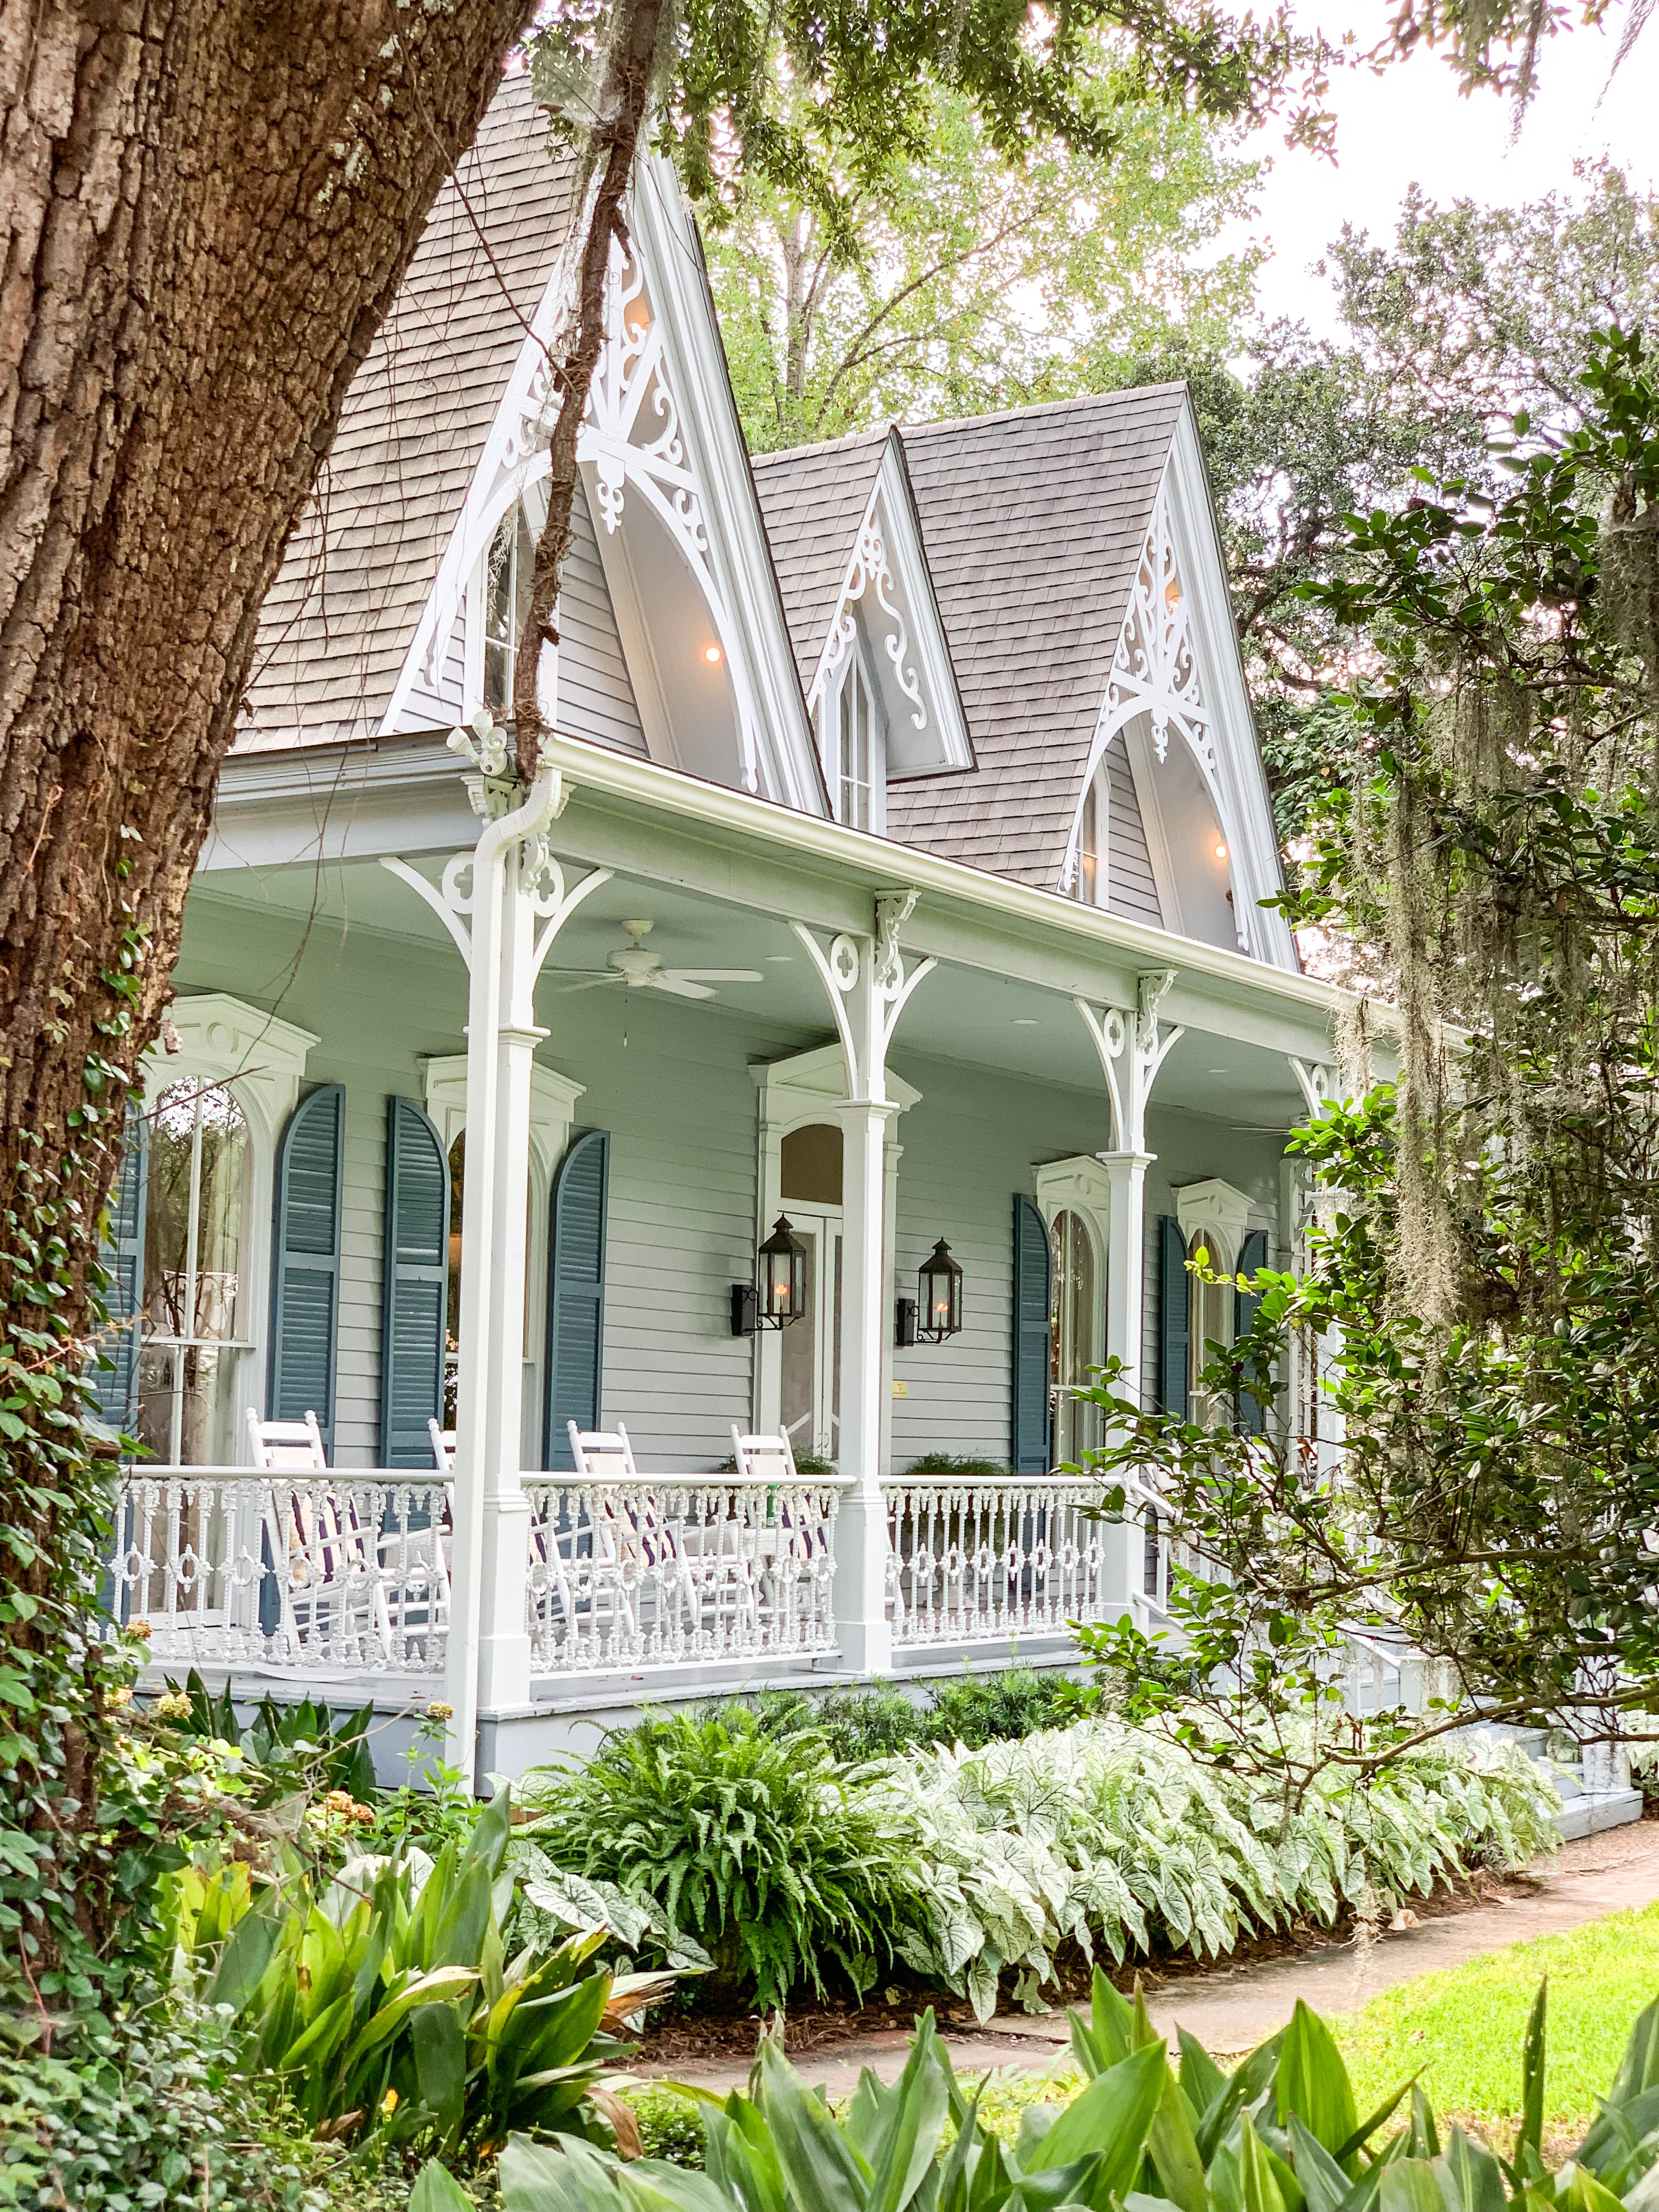 The St. Francisville Inn